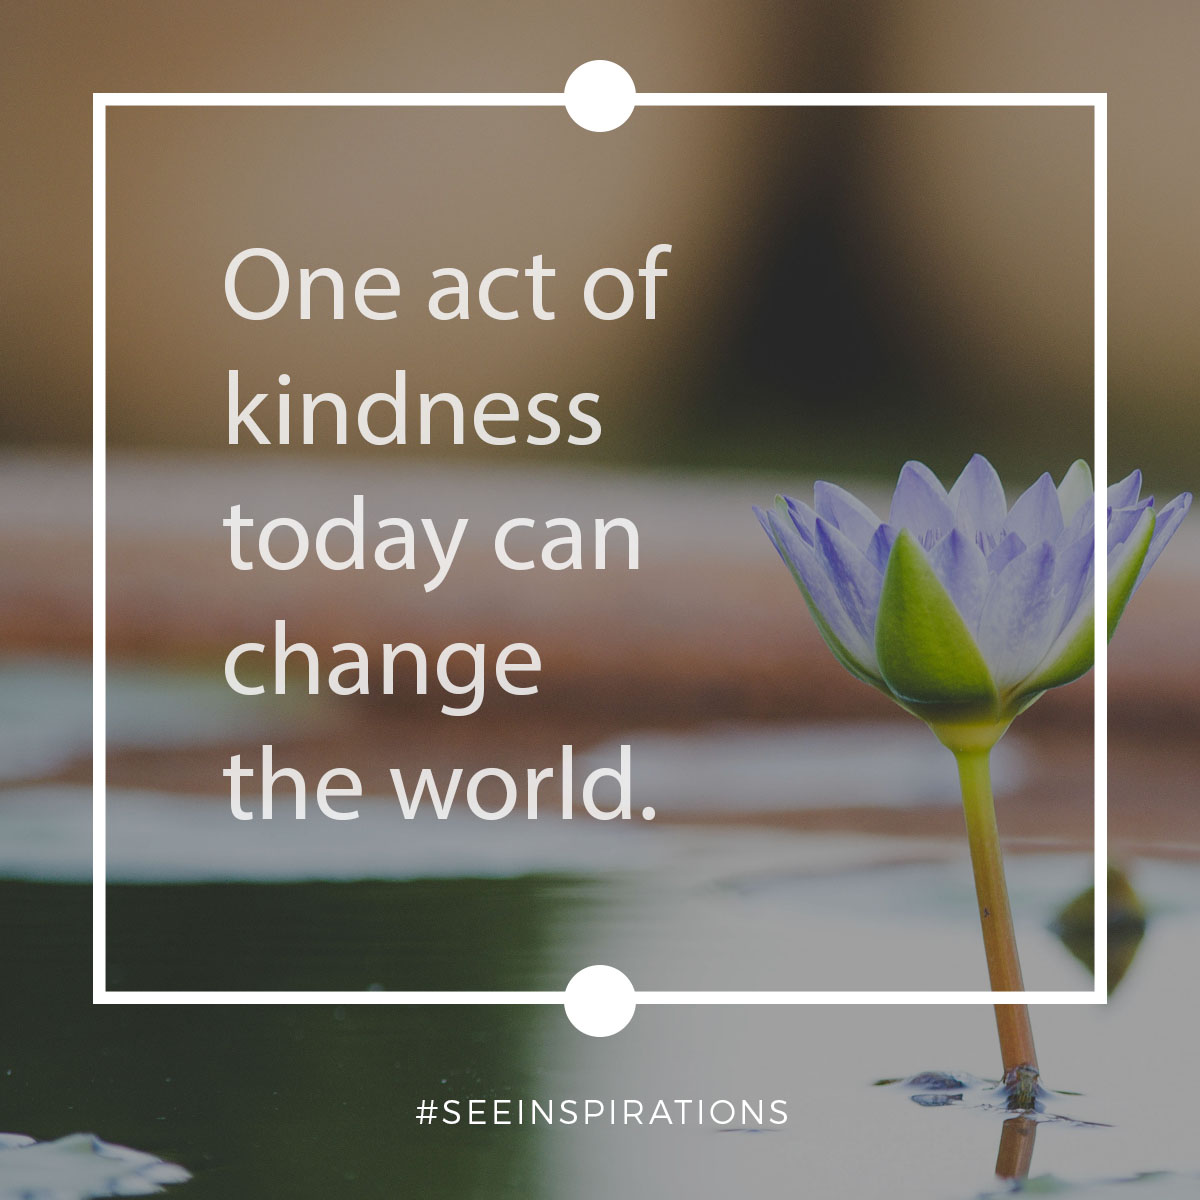 One act of kindess today can change the world.